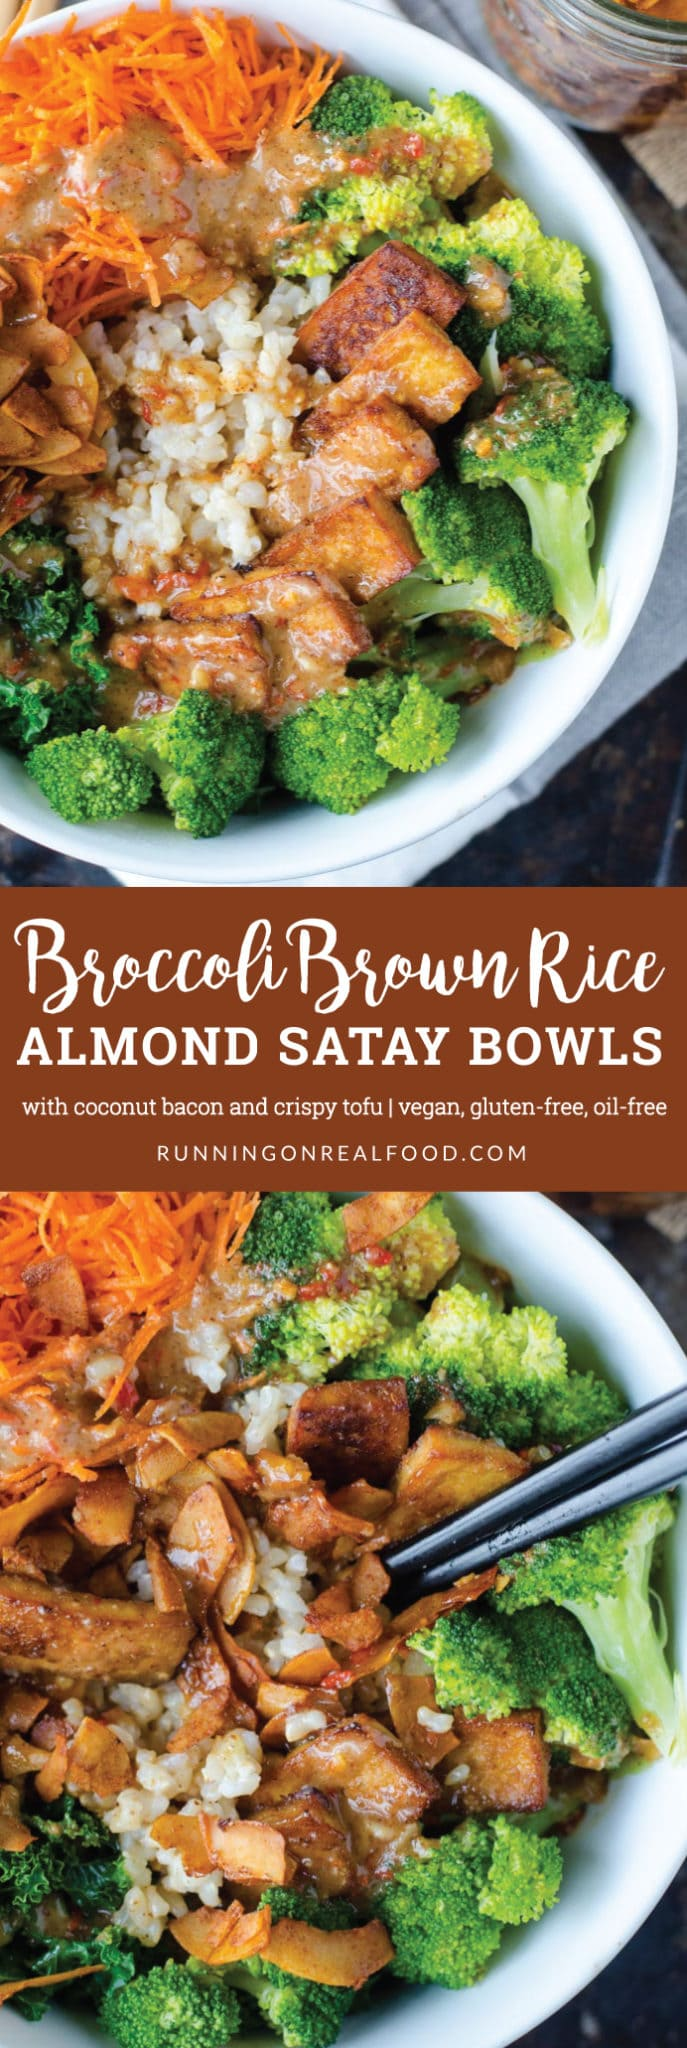 These Broccoli Brown Rice Bowl with Almond Satay Sauce feature lightly steamed kale, coconut bacon, steamed broccoli and grated carrot. They're highly nutritious and absolutely delicious. So many flavours and textures, from the sweet and salty, crispy coconut bacon to the creamy almond satay sauce and chewy brown rice, you will love these outstanding healthy buddha bowls!